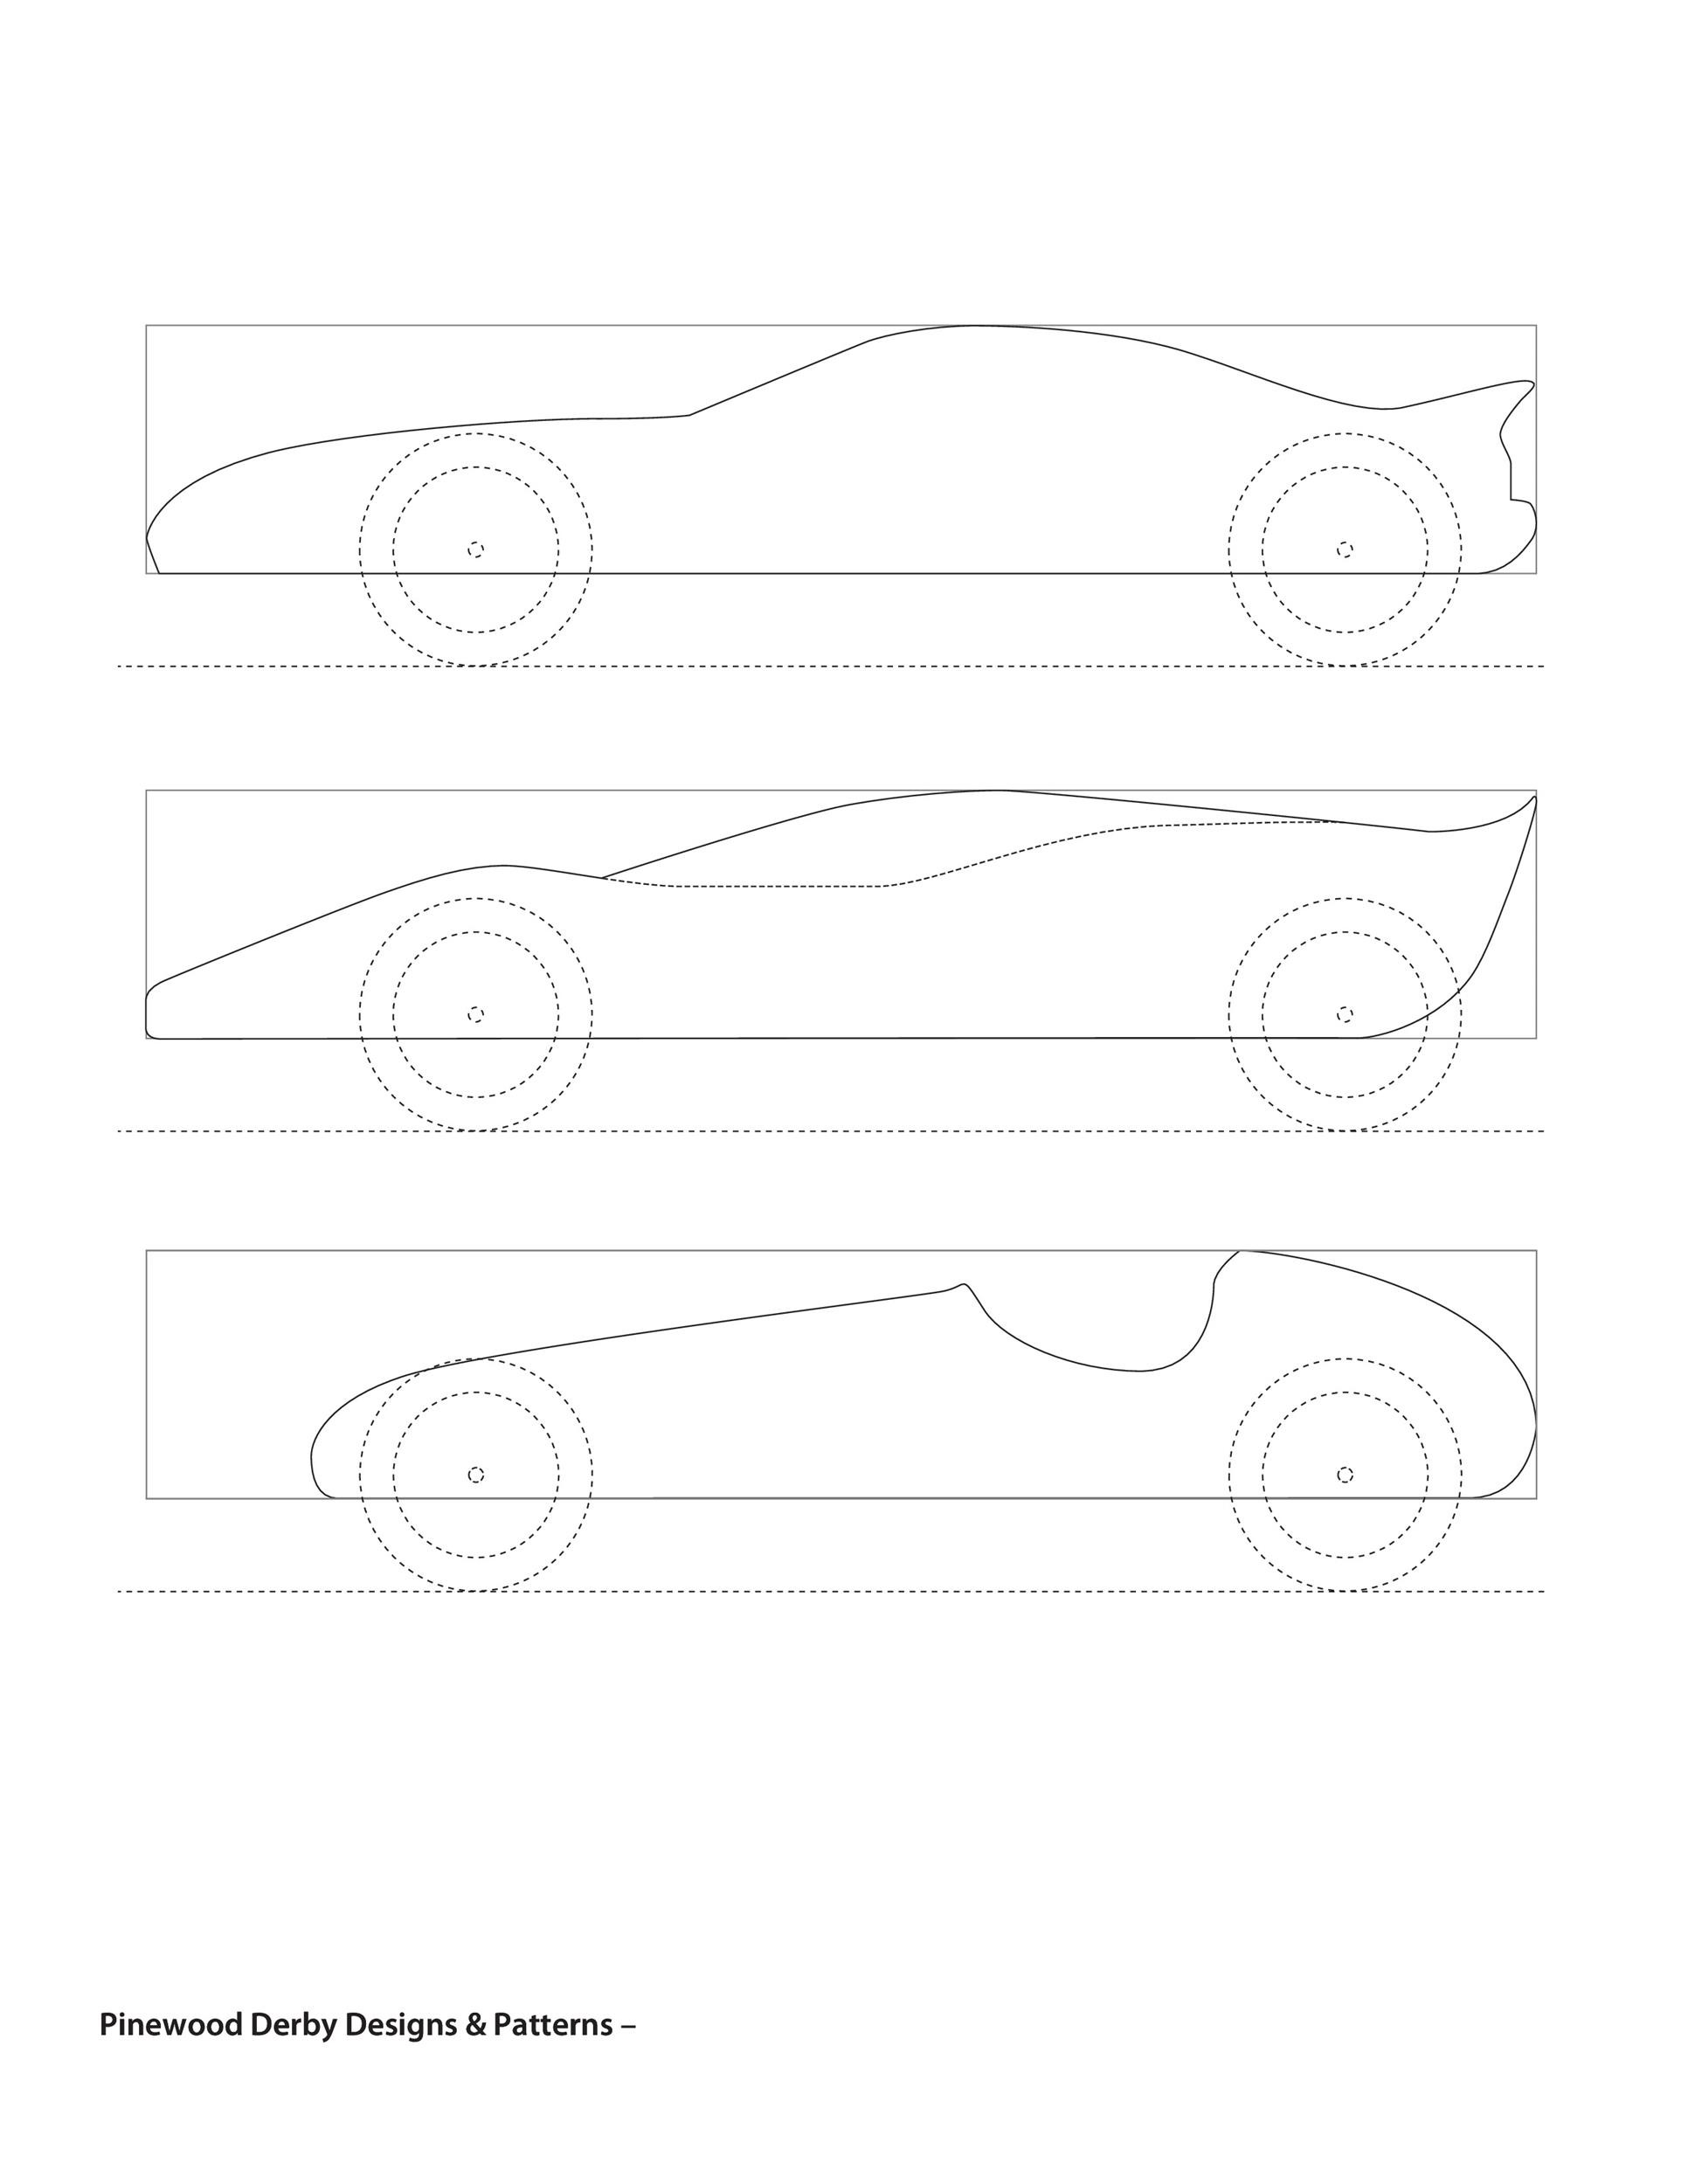 graphic relating to Pinewood Derby Car Templates Printable identify 39 Wonderful Pinewood Derby Automobile Ideas Templates ᐅ